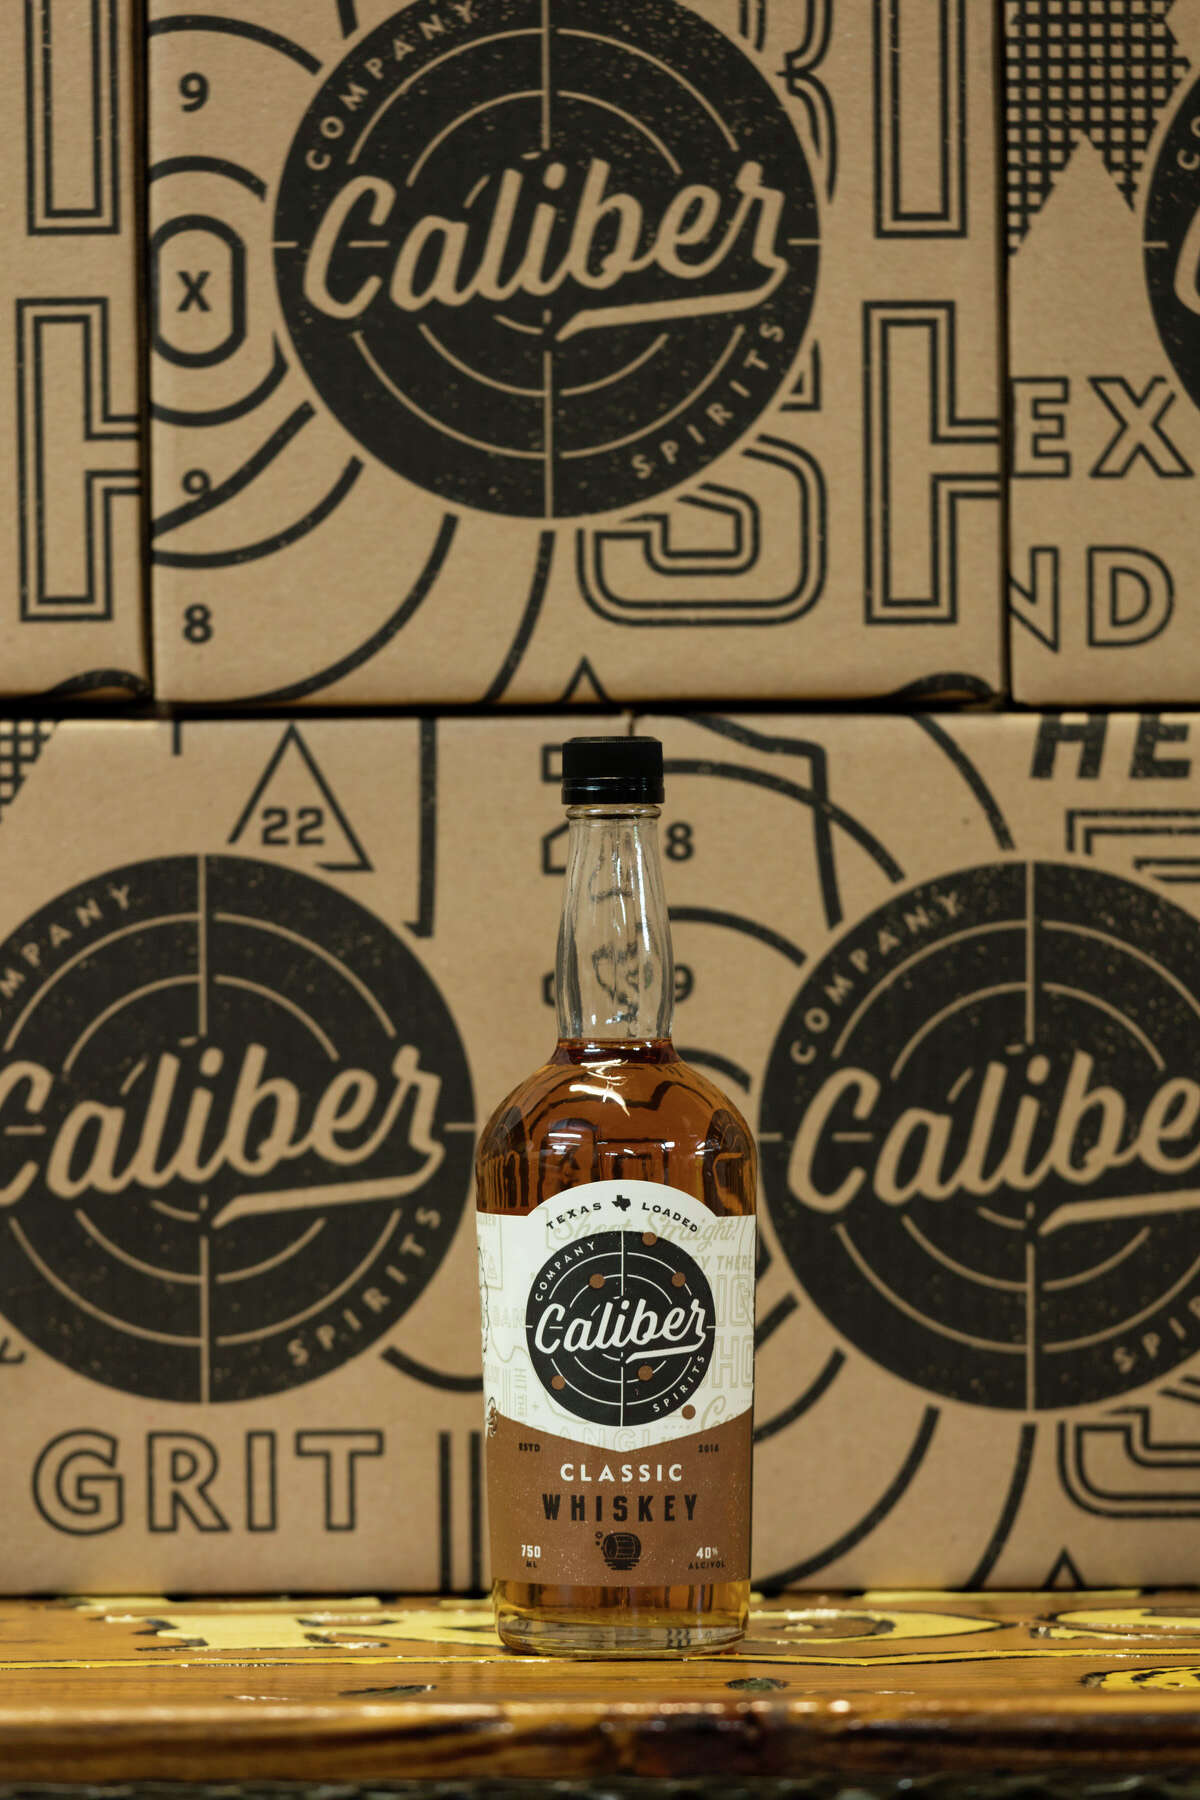 Caliber Company Spirits, a new brand from Yellow Rose Distilling, has created a new line of flavored whiskeys. Shown: Classic whiskey with flavors of vanilla bean, honey and oak.